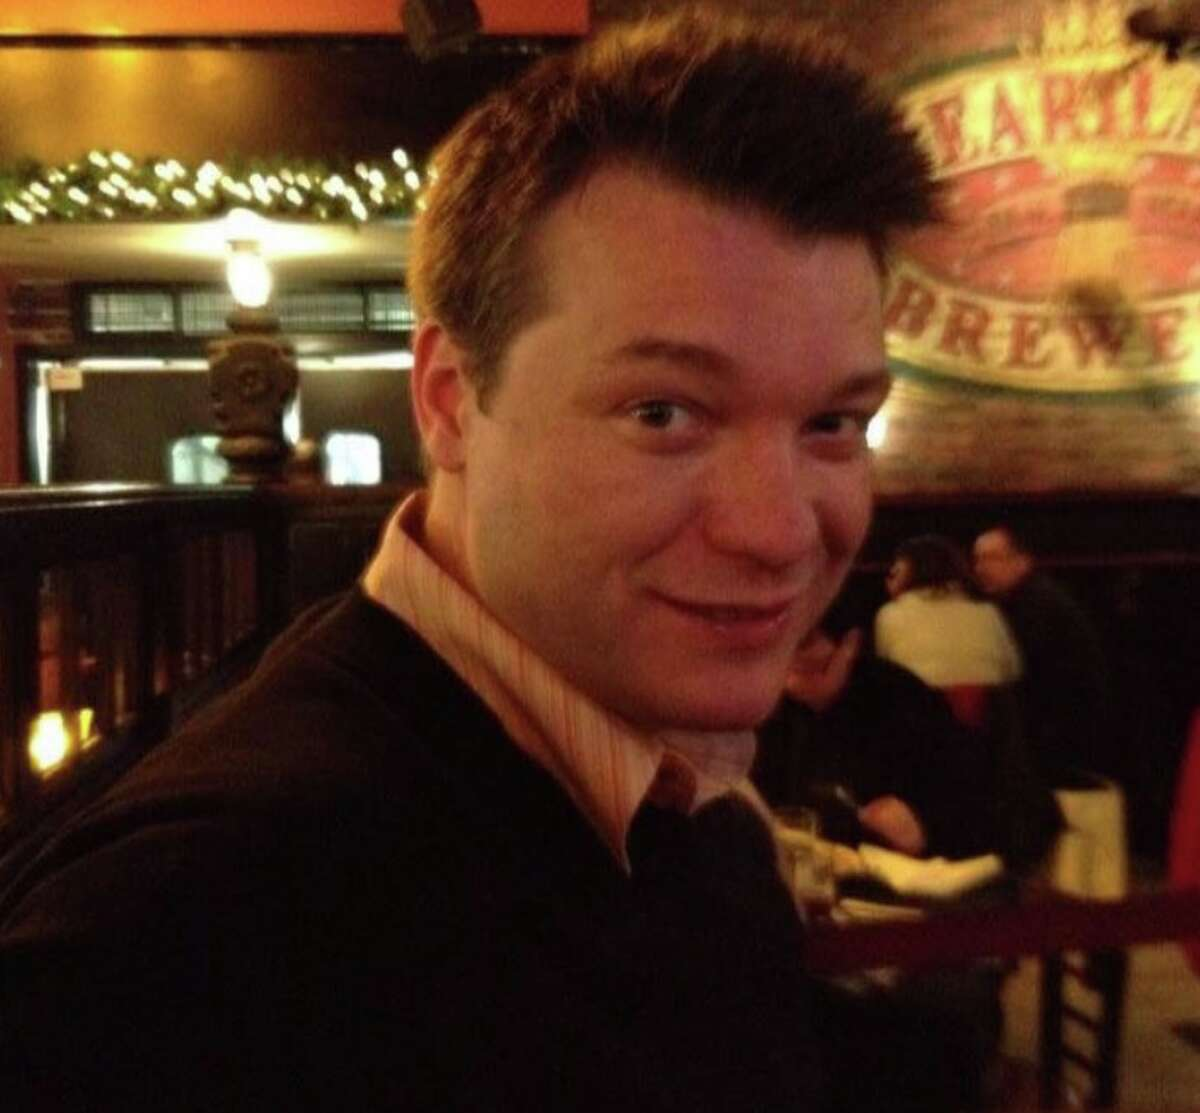 Daniel Satre died Sept. 21, 2014 during an encounter with police. (Contributed photo.)